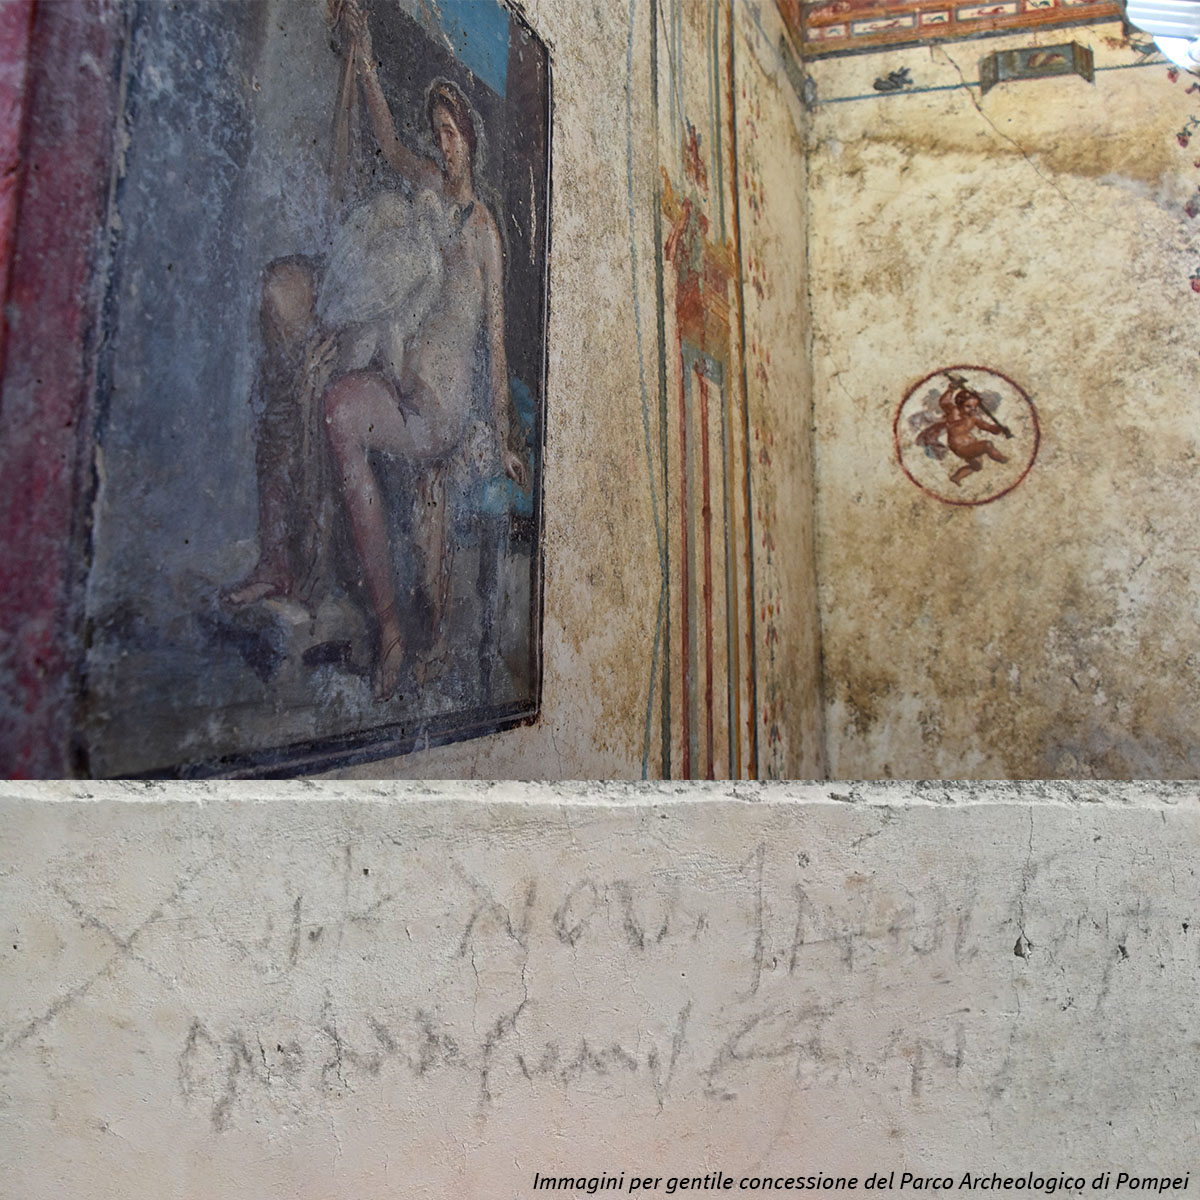 Italy: the inscripition and villas discovered in Pompeii